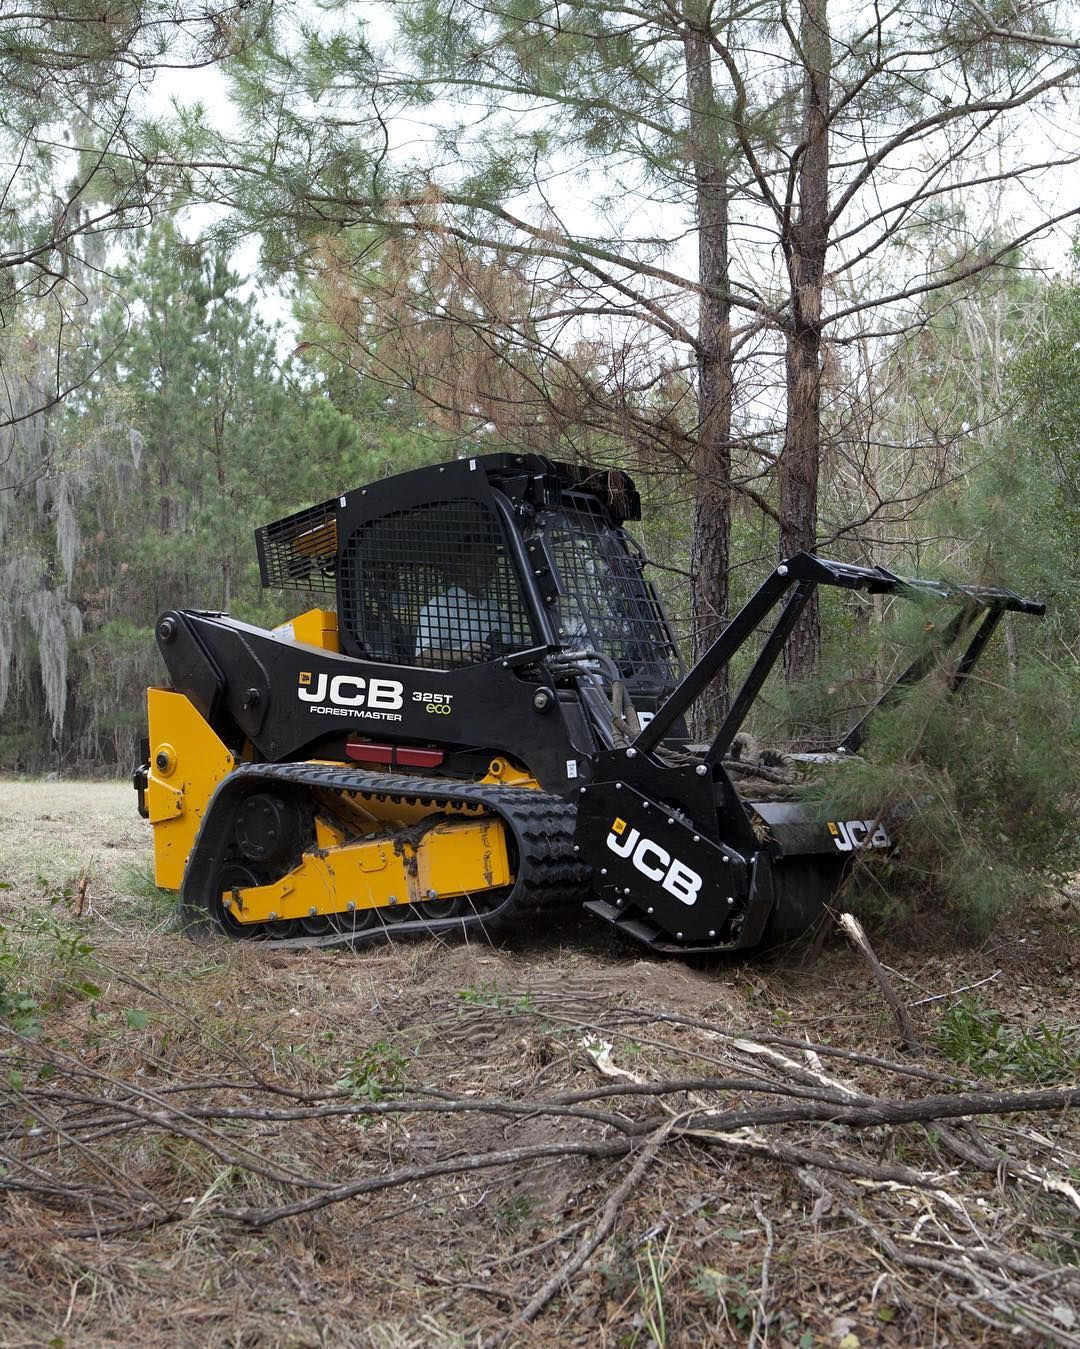 A JCB Skid Steer is safe, economical and highly productive